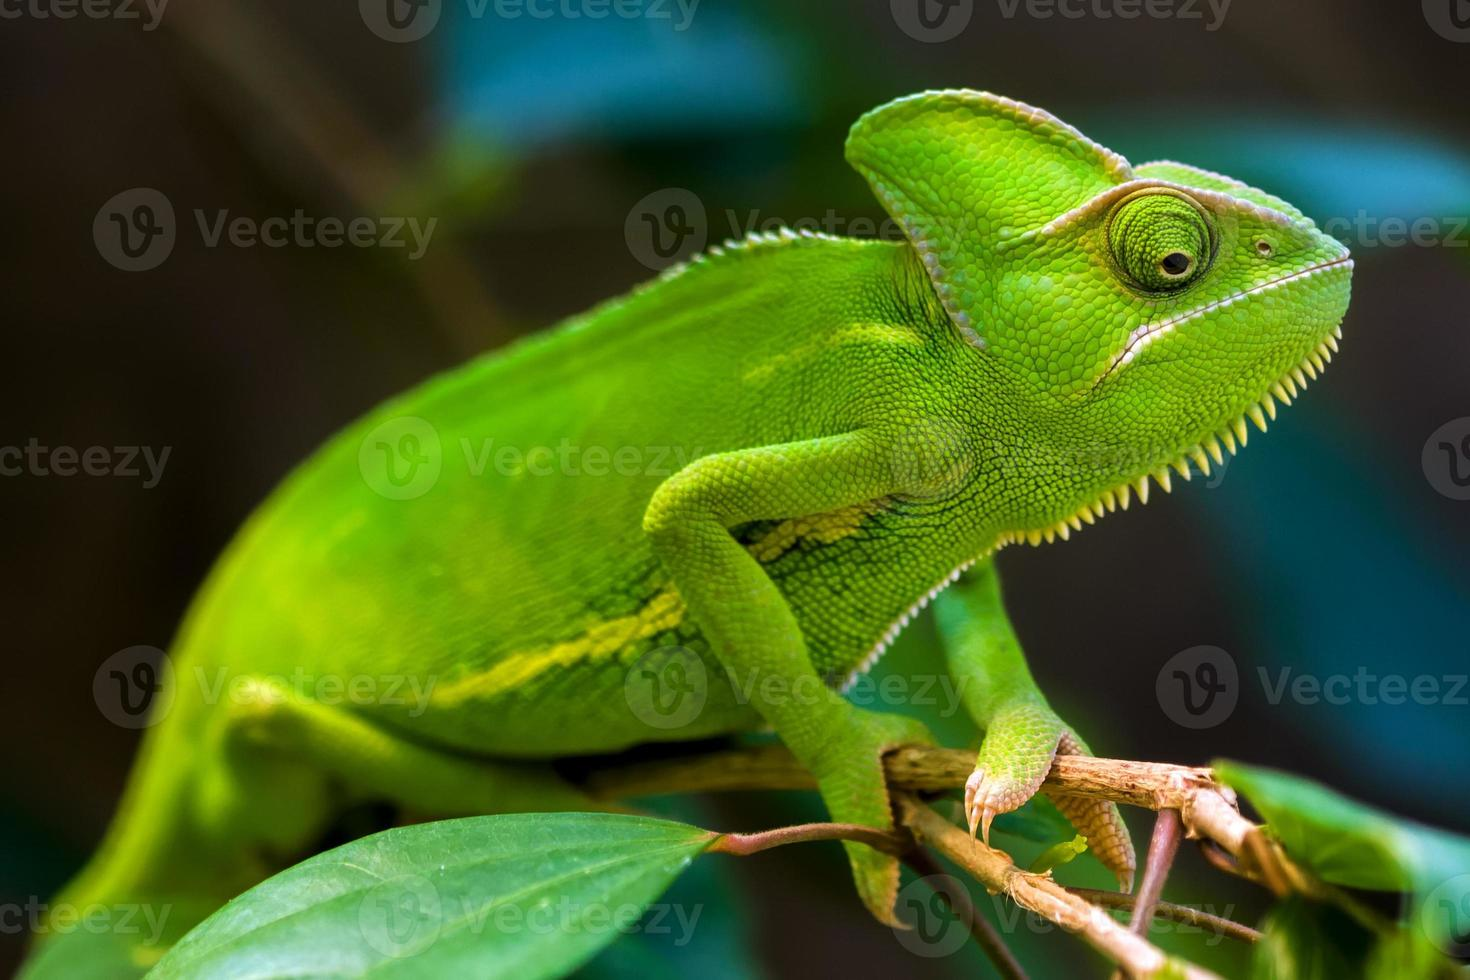 A close-up shot of a green chameleon holding on to a branch photo